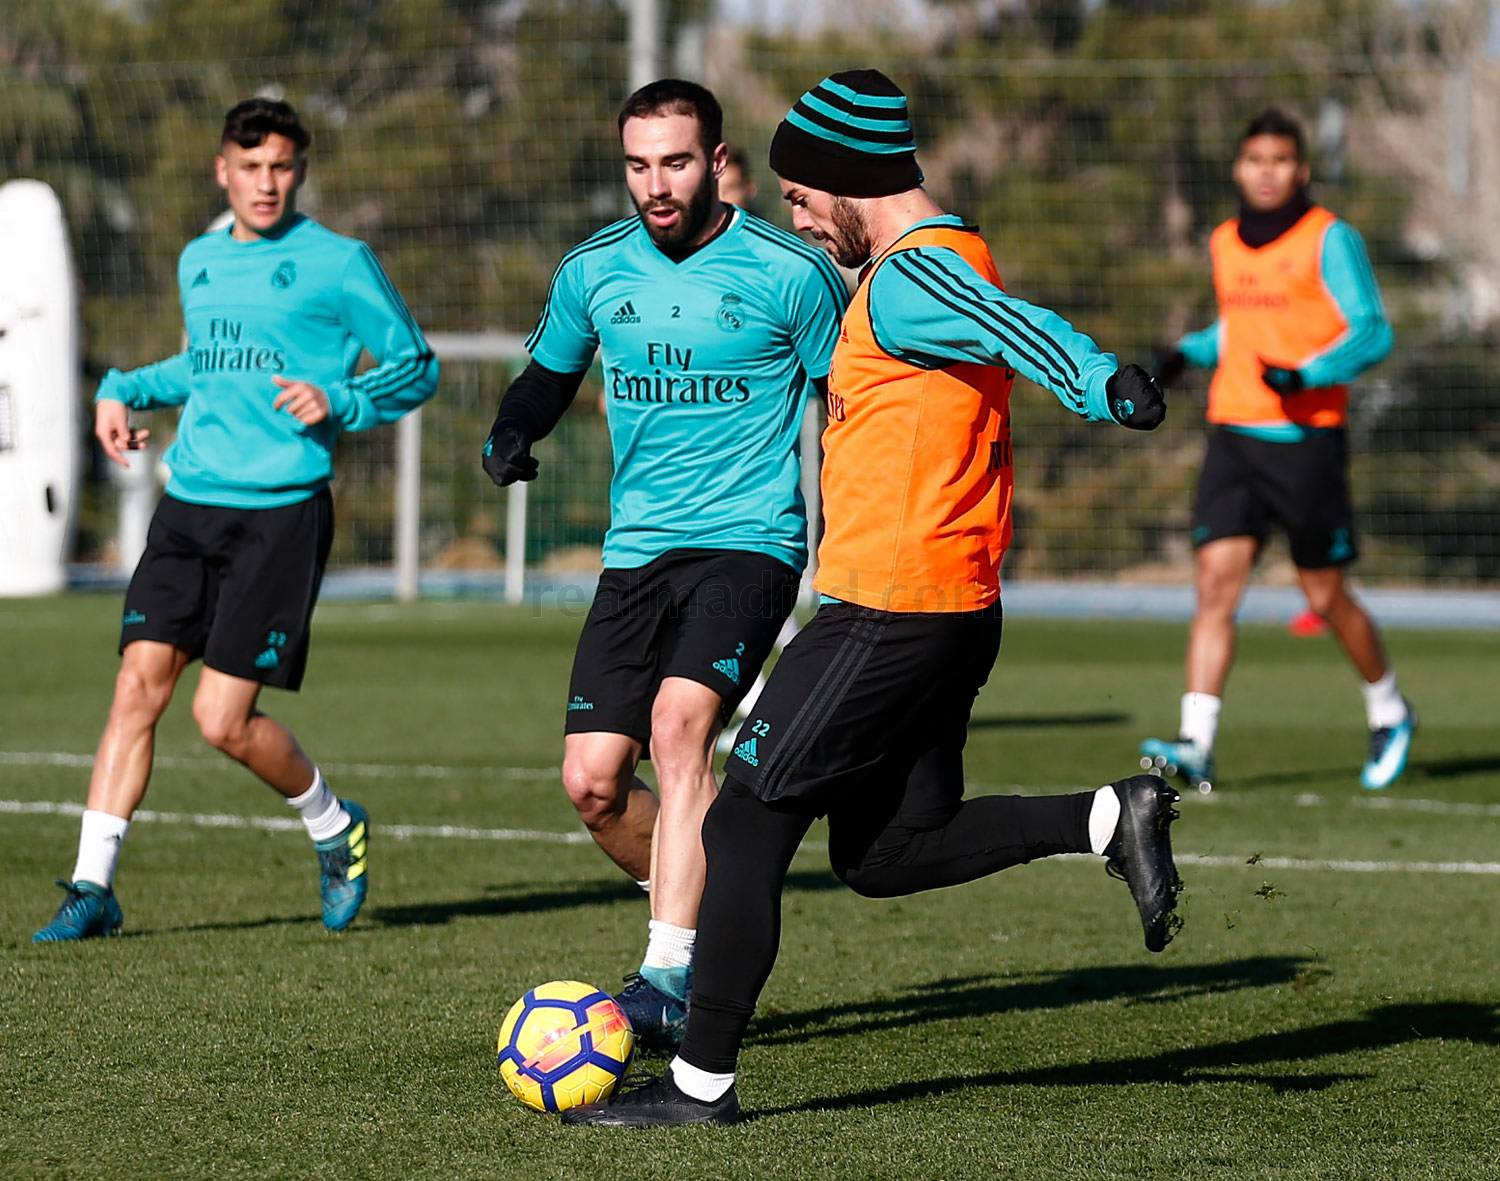 Real Madrid - Entrenamiento del Real Madrid - 11-01-2018